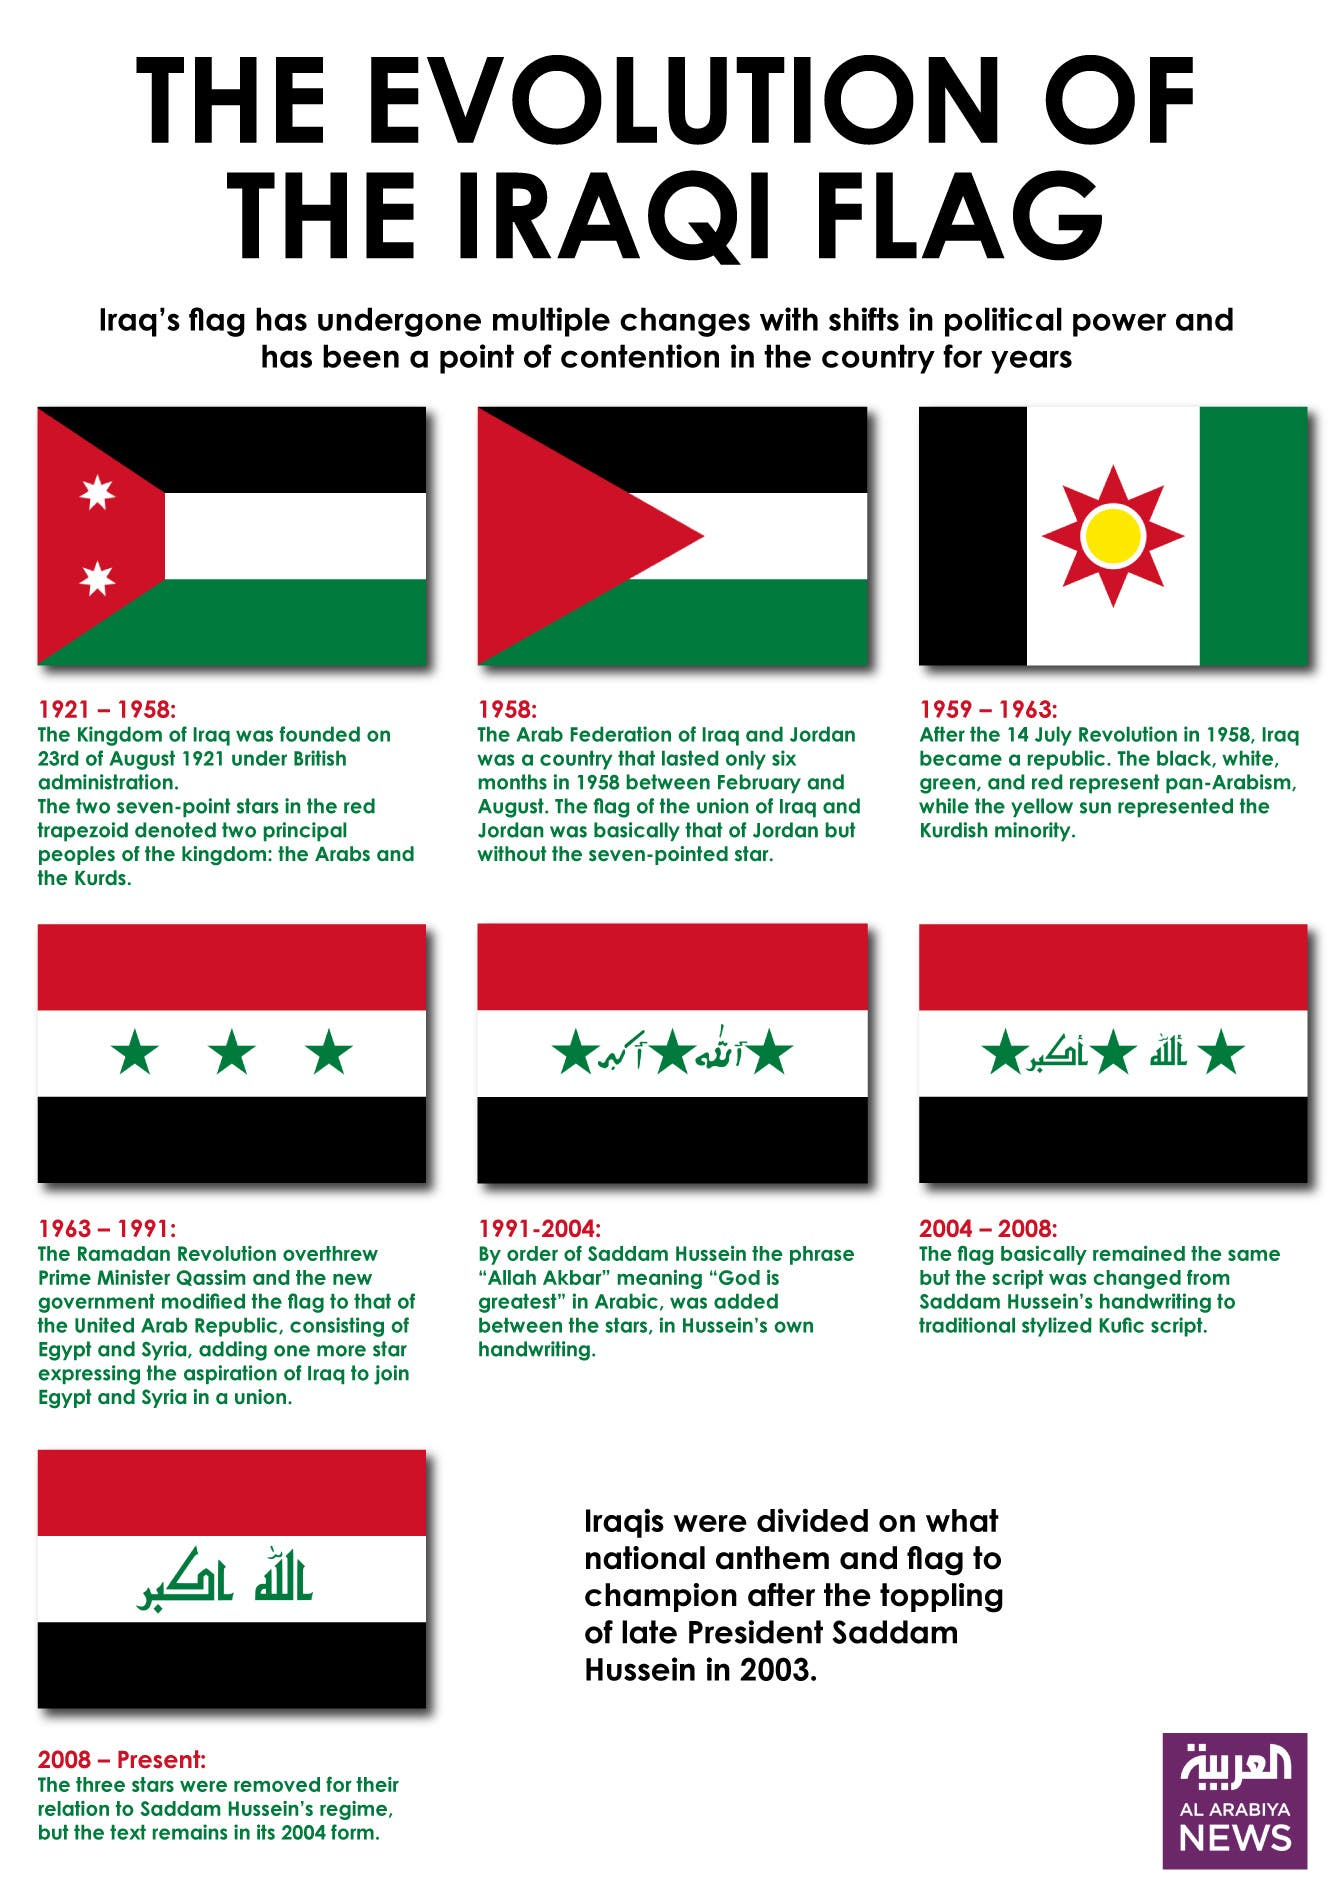 Infographic: The evolution of the Iraqi flag